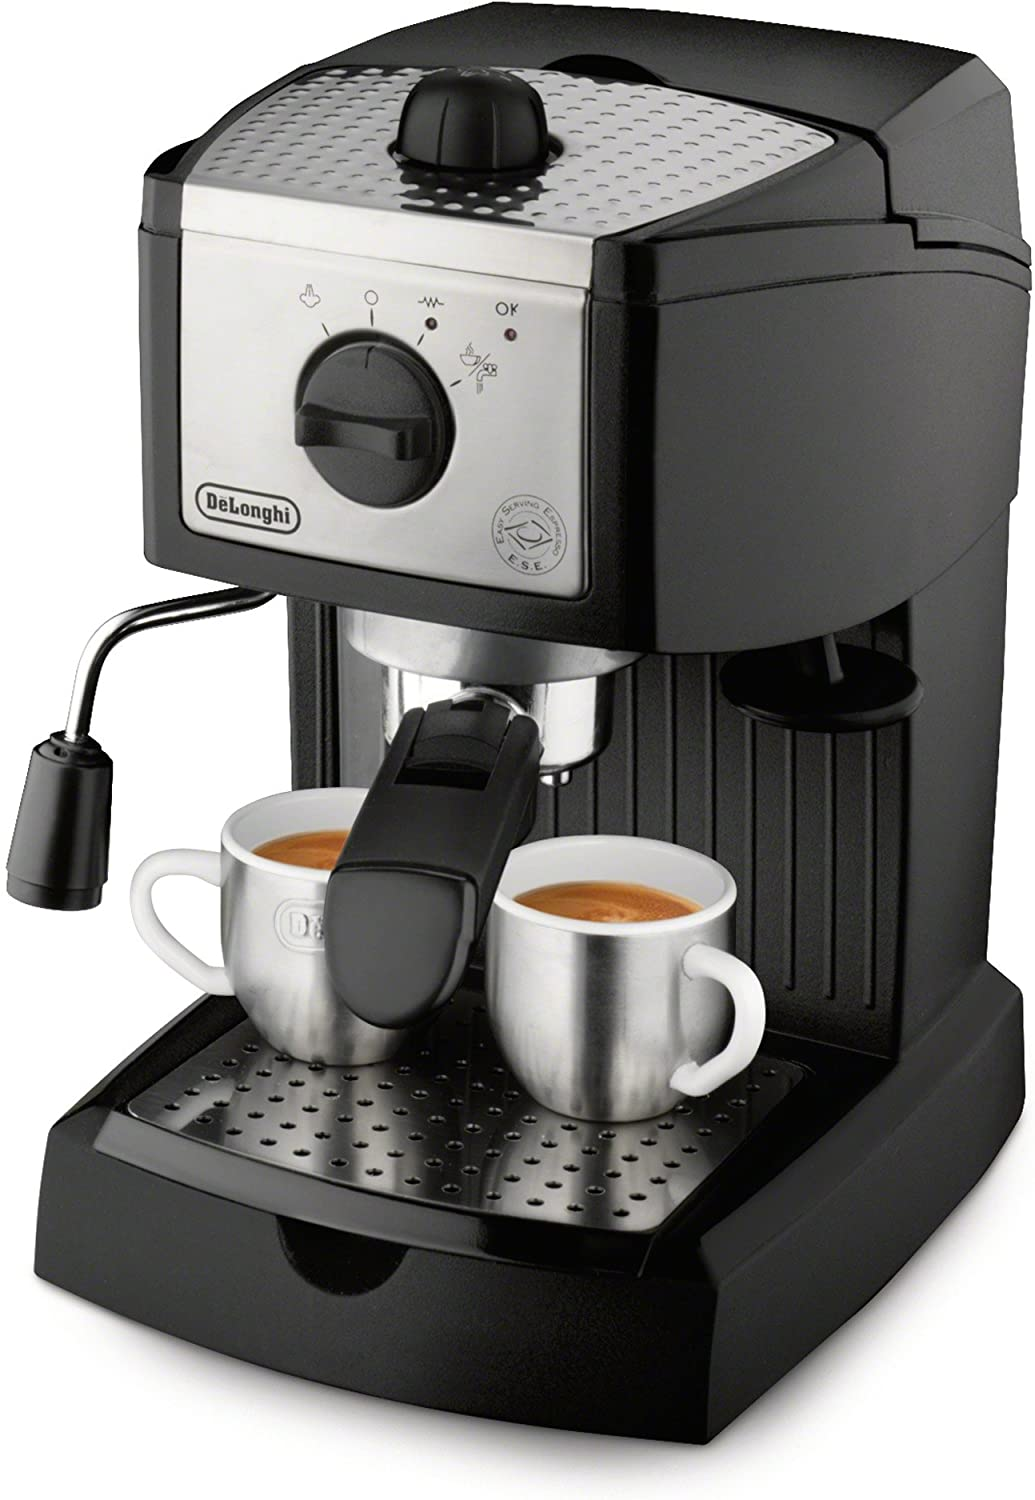 The Best Espresso Machine for Mom - 2021 Ratings & Reviews 9